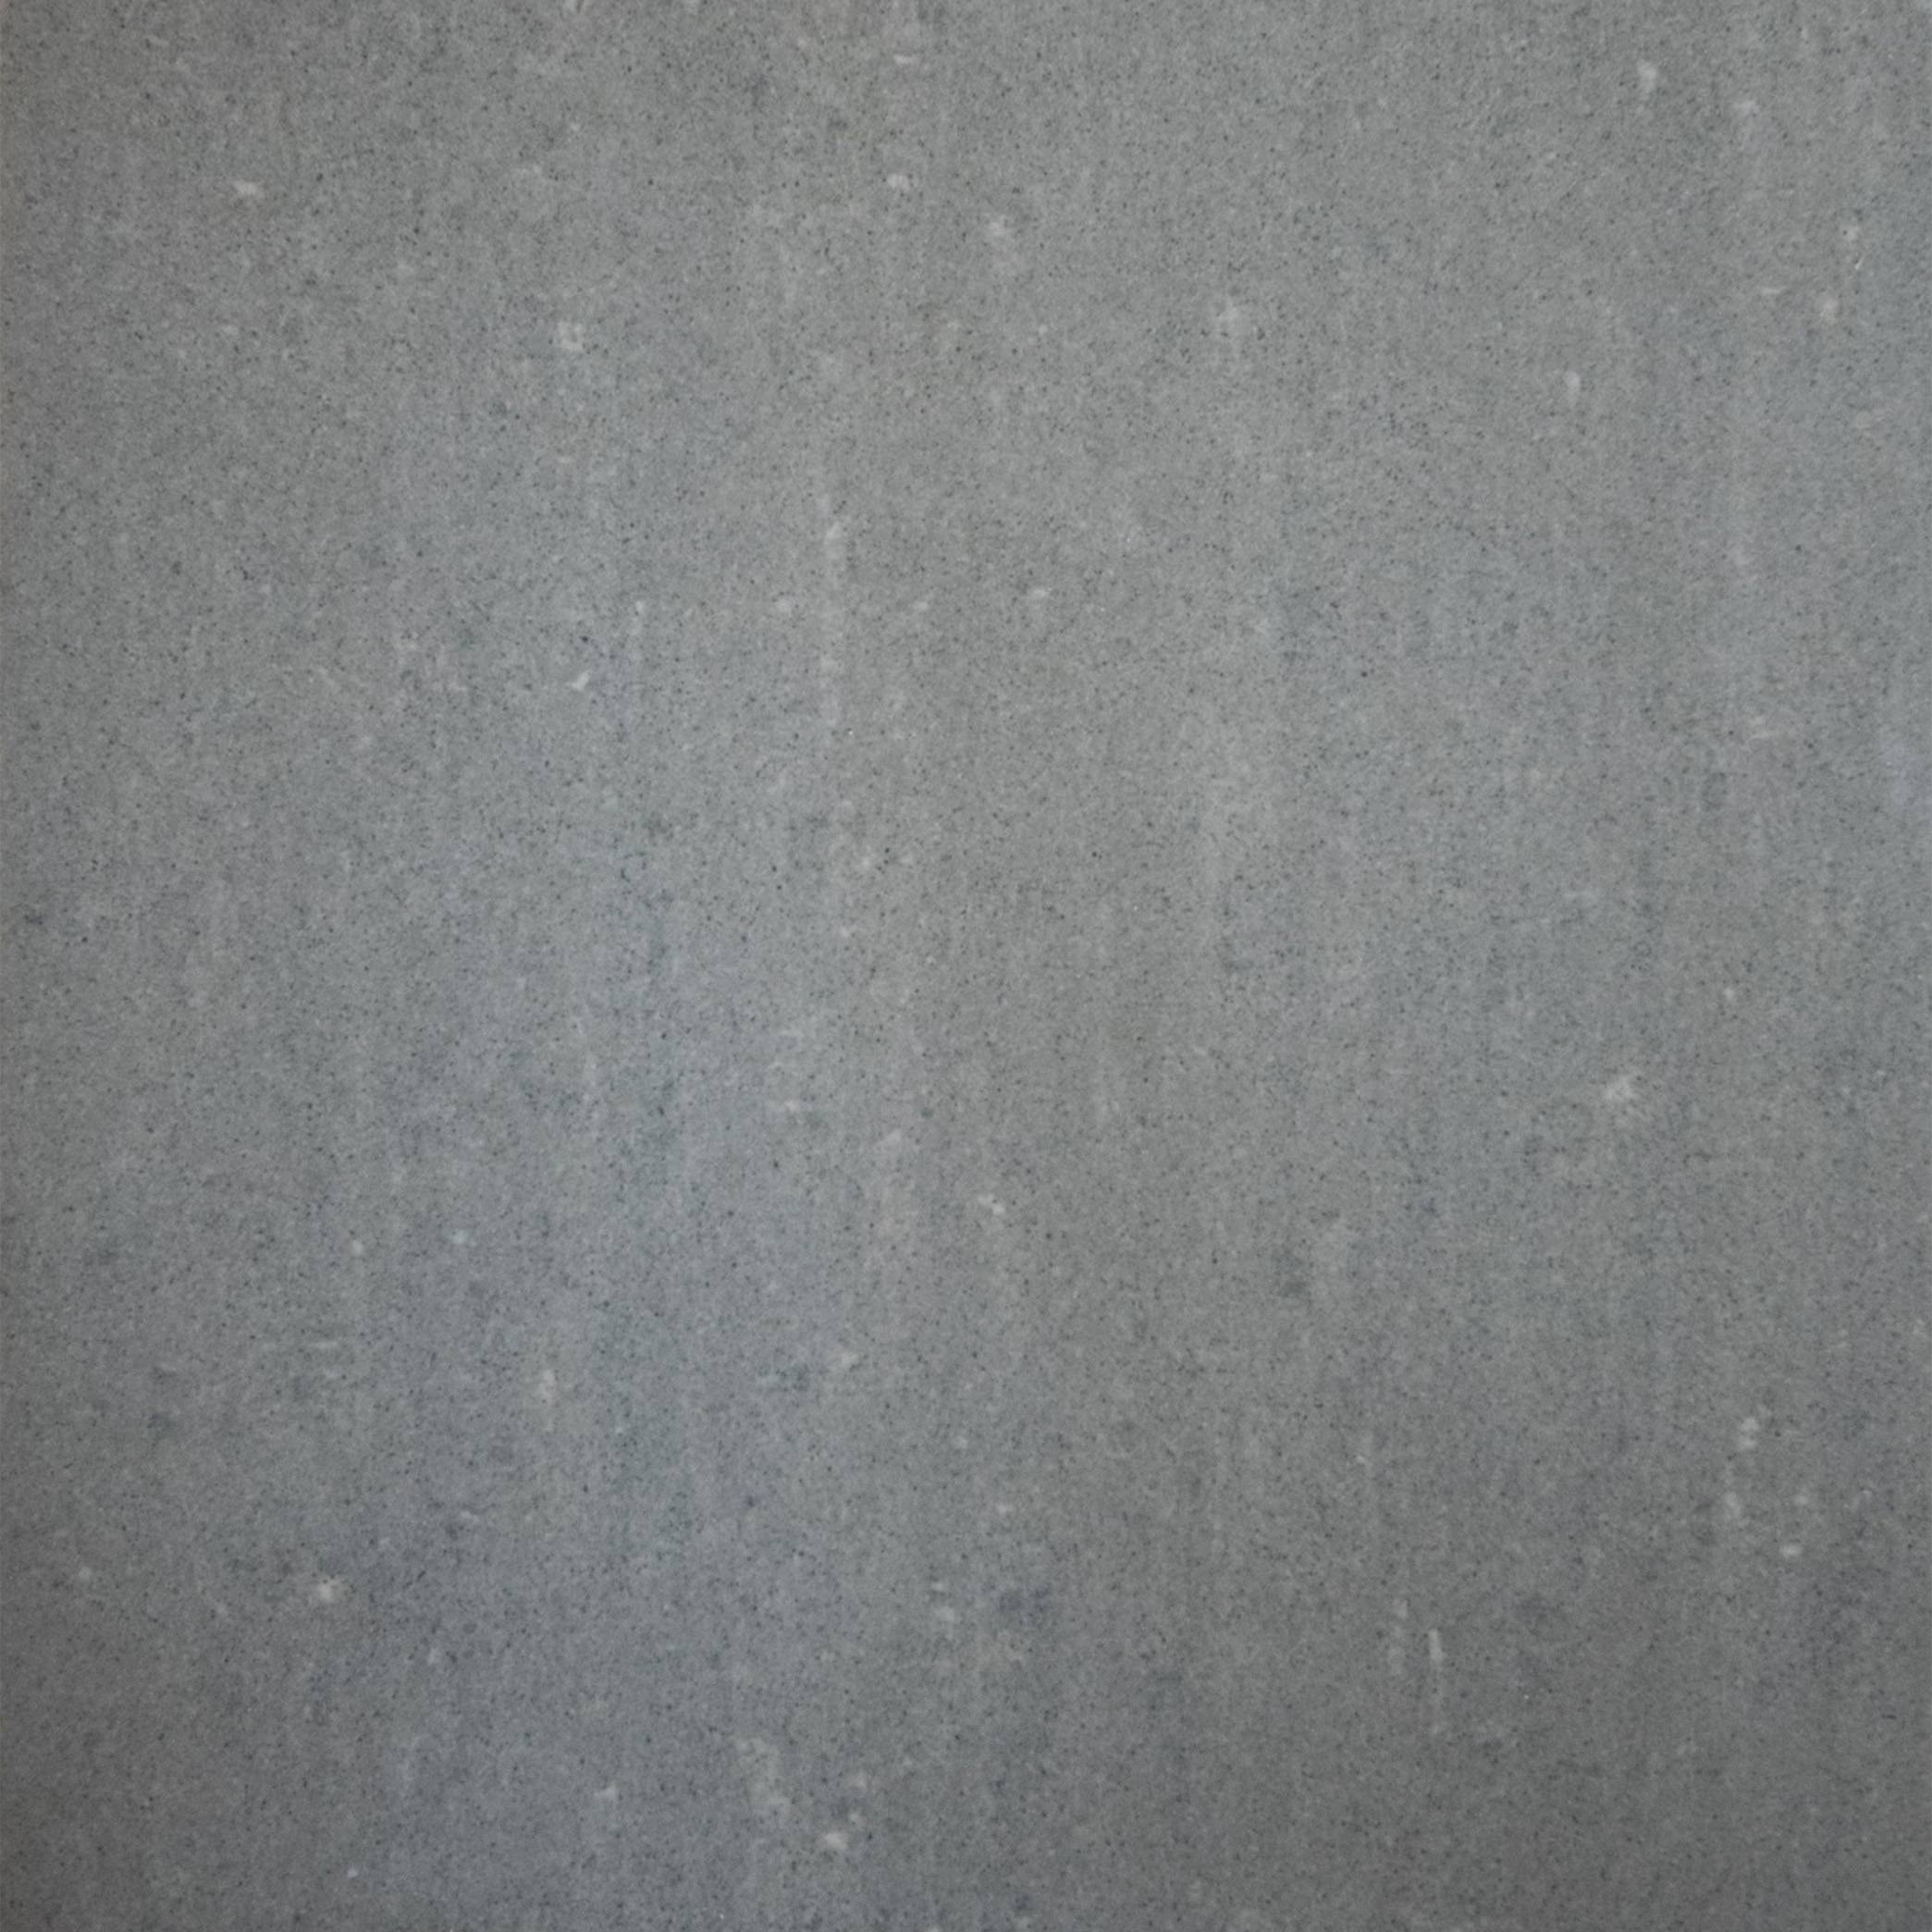 Feature Wall Wallpaper 3d Adobe Photoshop Even Brightness In Texture Graphic